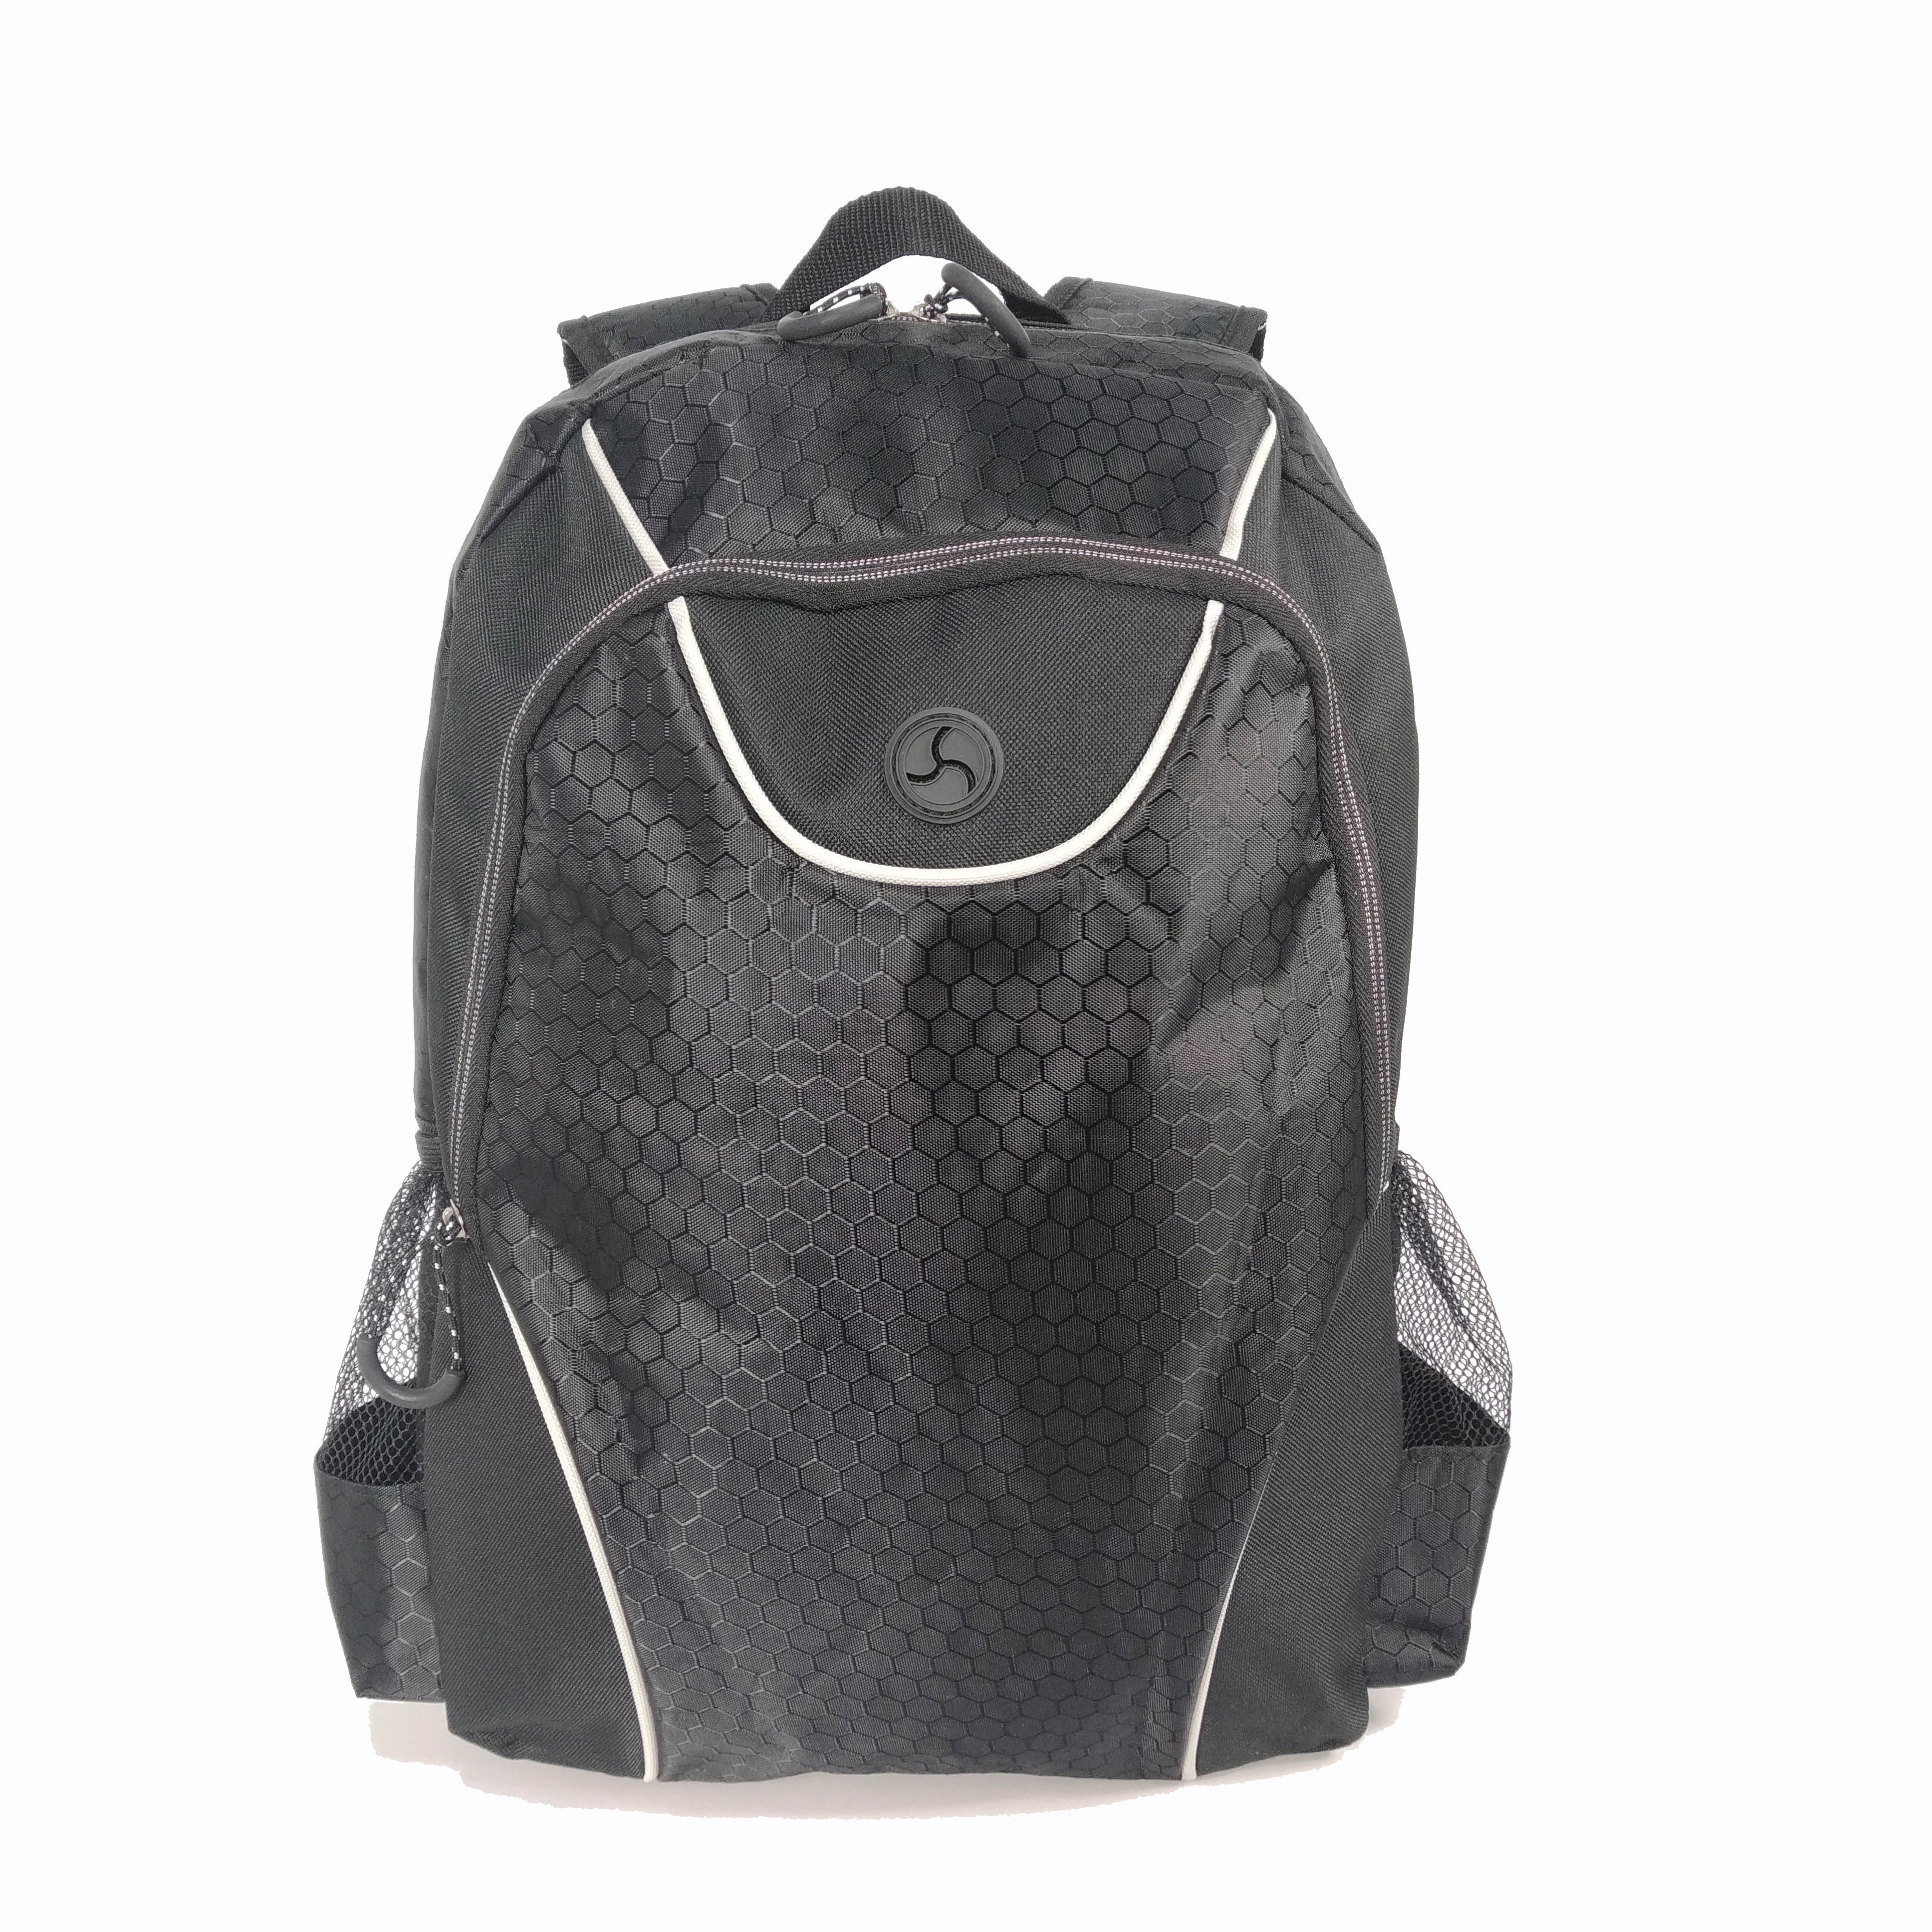 2020 Cheap Lightweight Kids Casual Bag Promotion Daypack hiking travel Backpacks